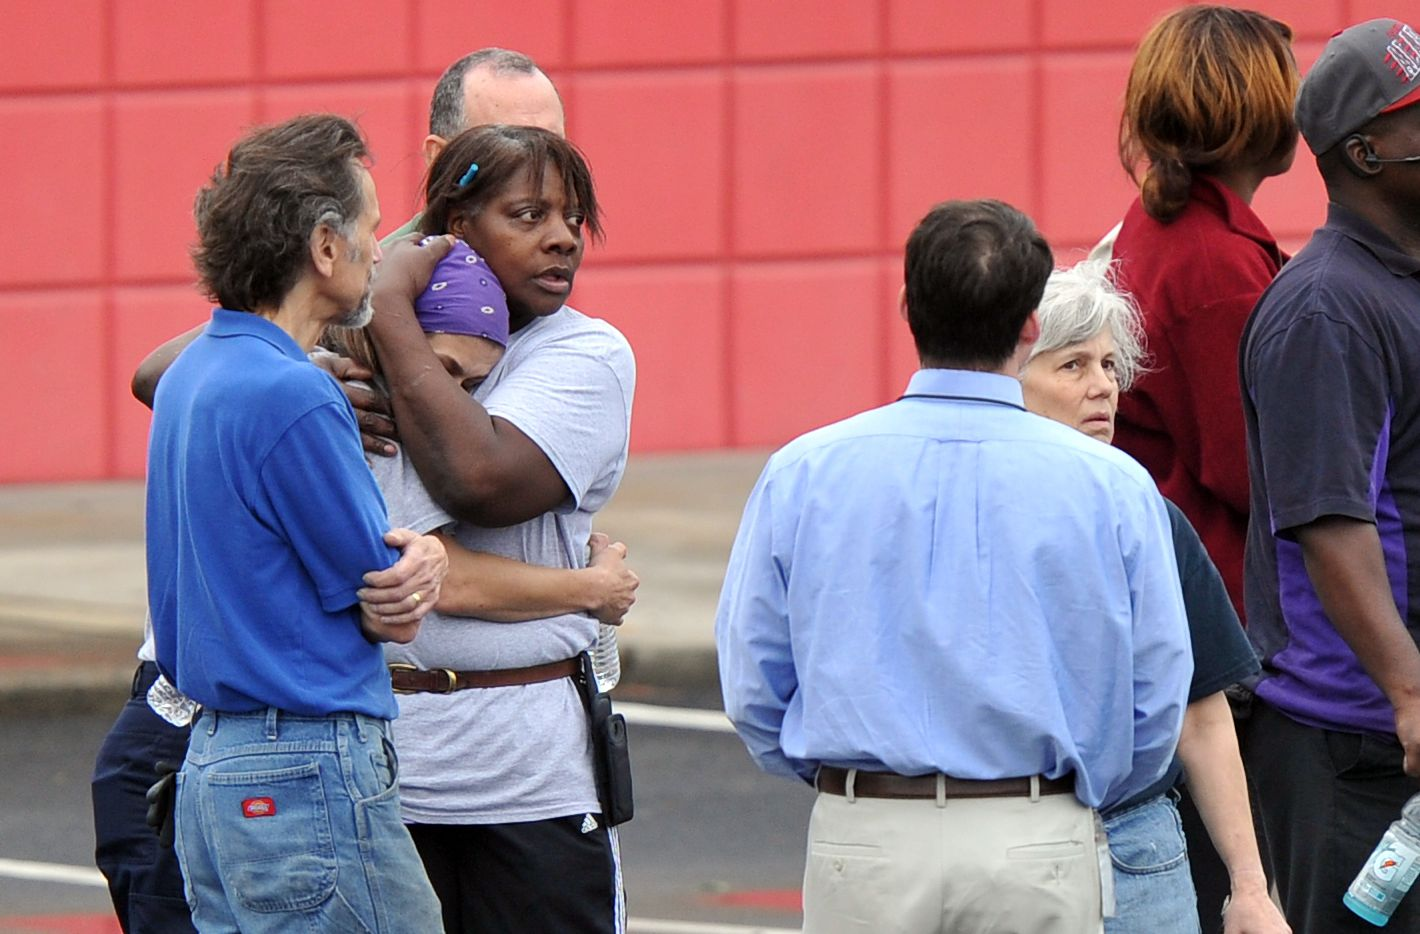 FedEx employee Lisa Aiken, wearing bandana, is embraced by a co-worker as other employees gather at a skating rink following a shooting at a FedEx facility in Kennesaw, Ga., on Tuesday.